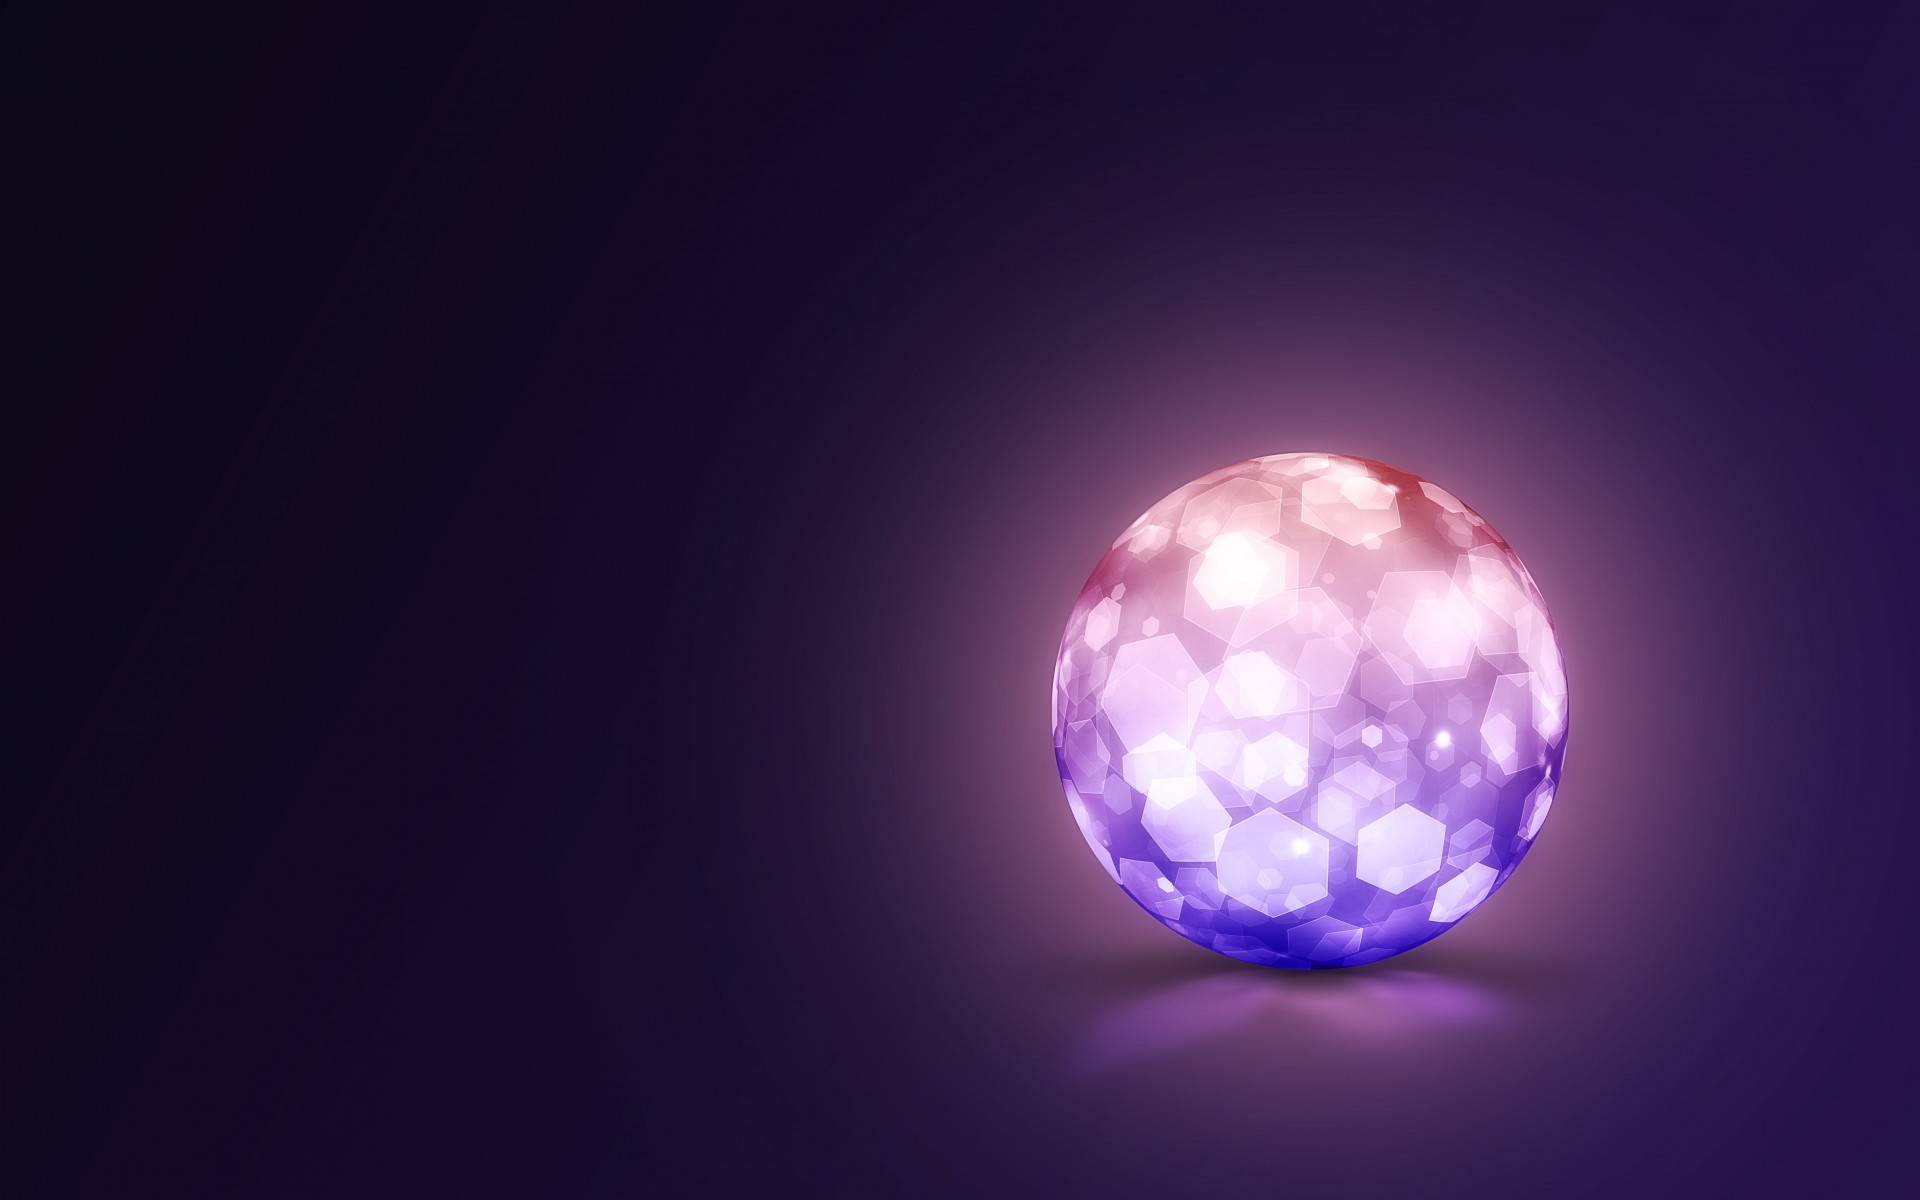 Lightning Ball Wallpaper for Desktop 1920x1200